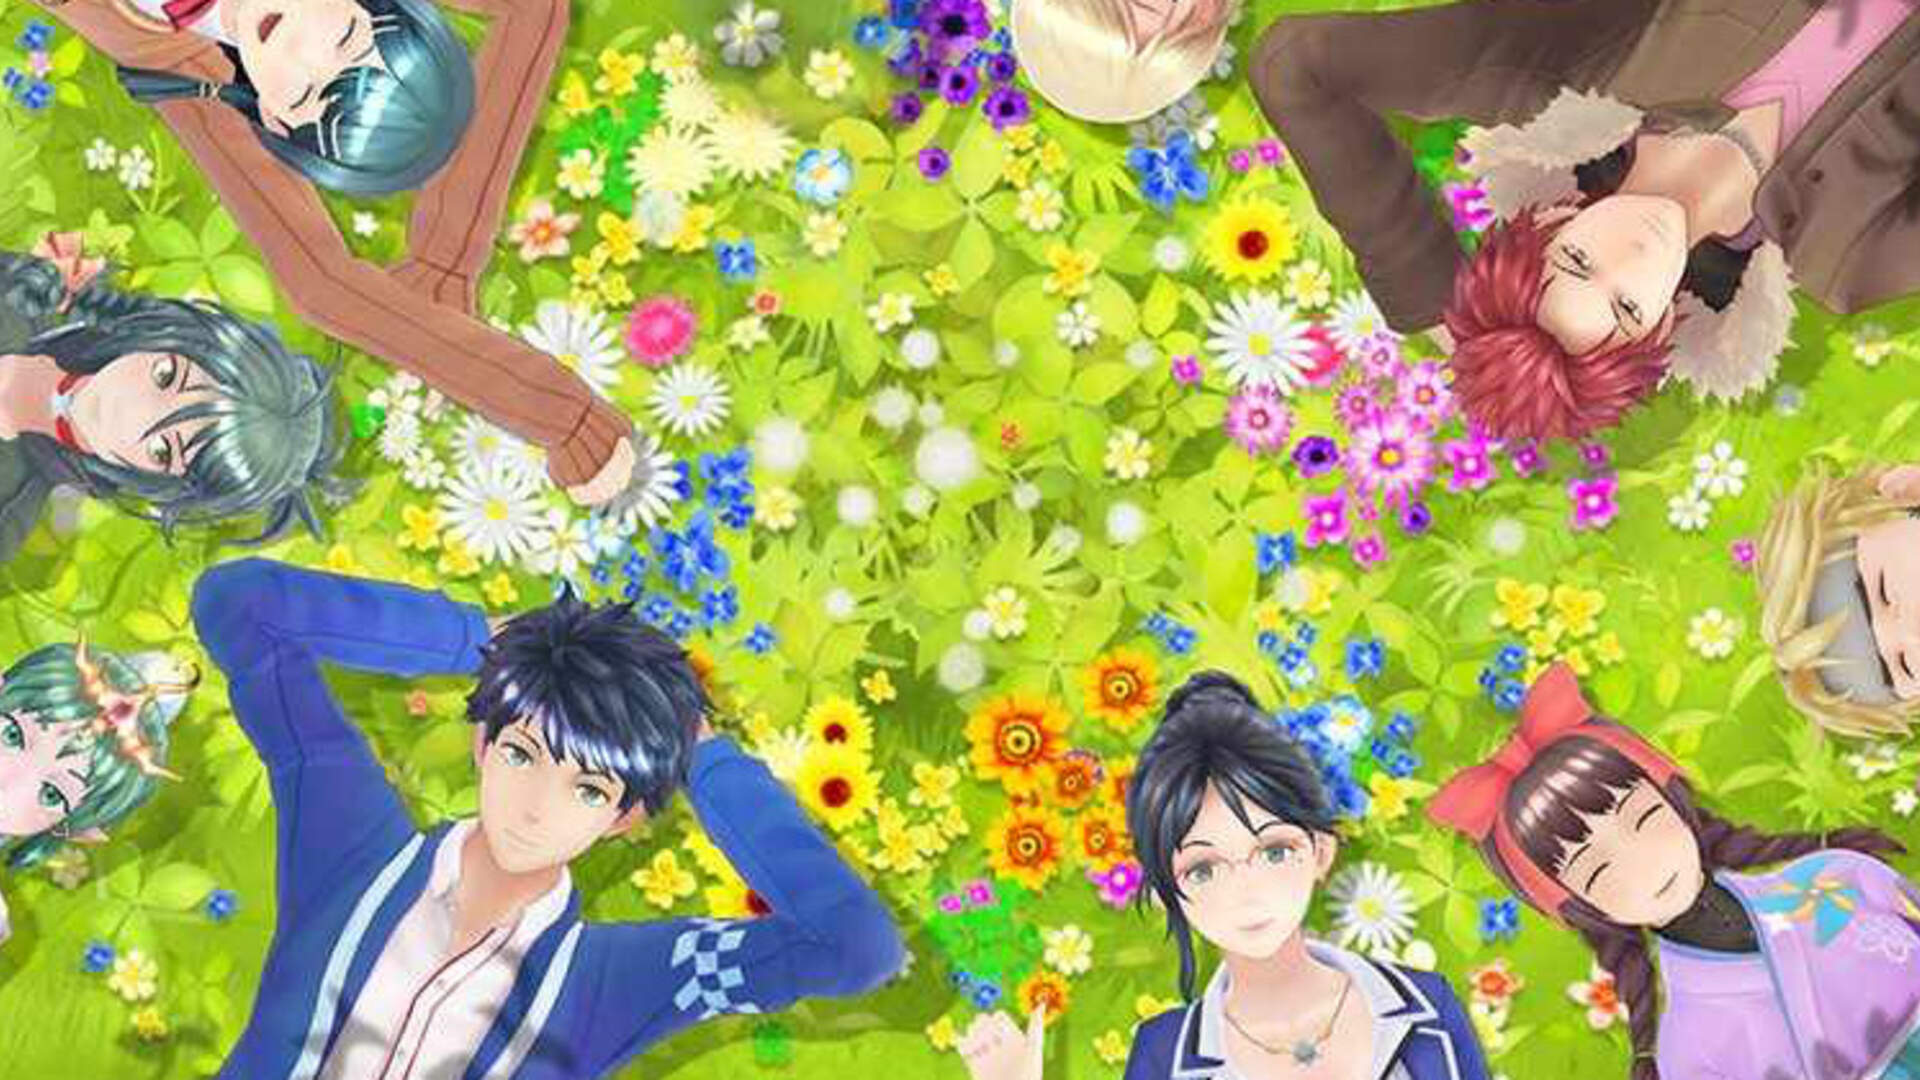 Tokyo Mirage Sessions #FE: More Persona While You Wait for Persona 5